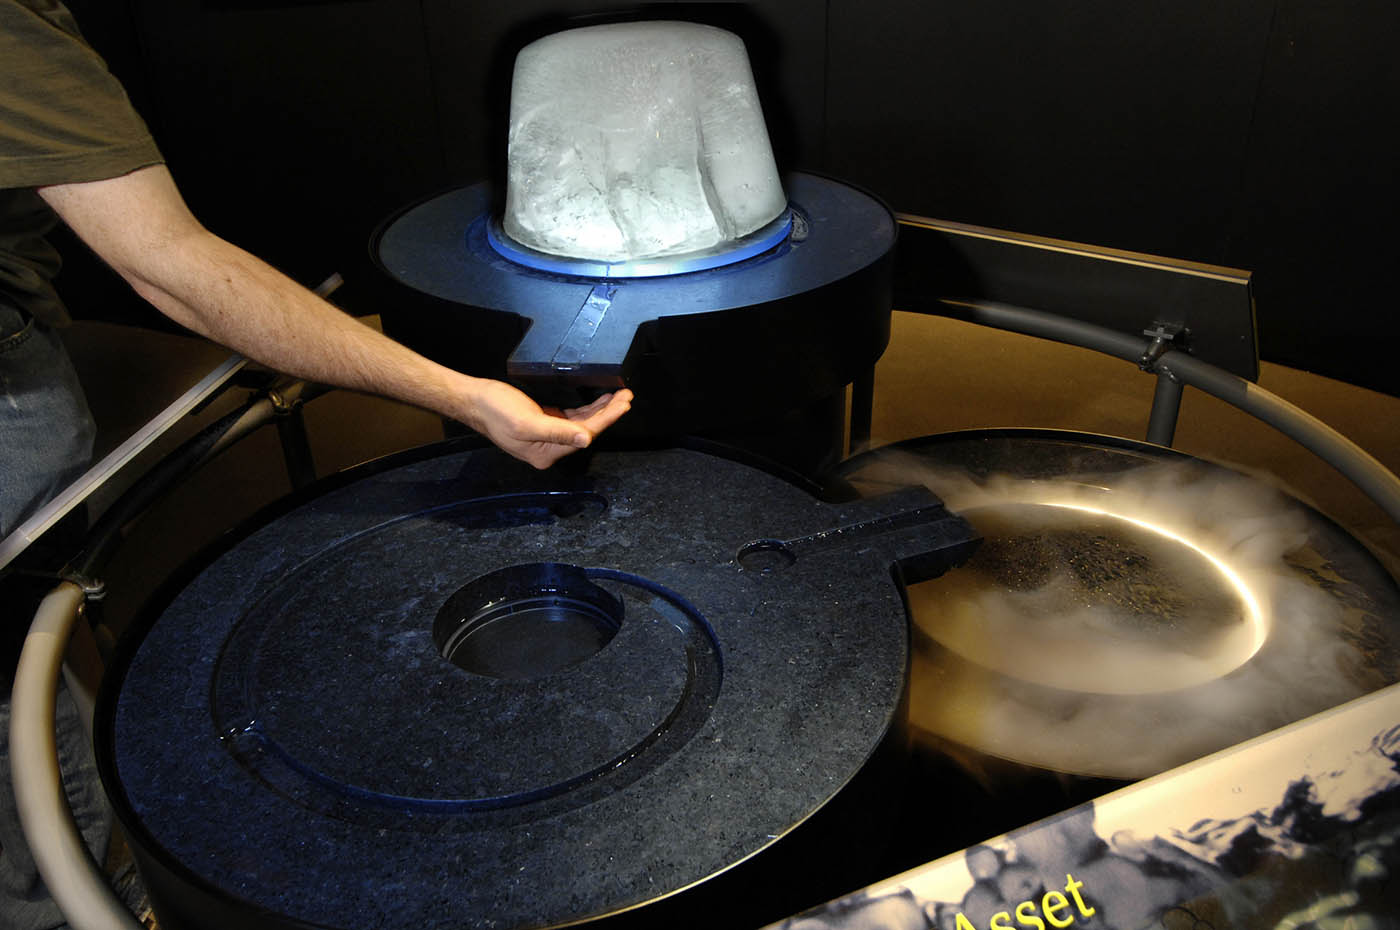 An arm extends into a stream of water coming from a block of ice, mounted on a circular plinth. Below the ice block, water spirals around the top of another plinth, which flows into a third plinth where a whitish vapour rises from the centre.